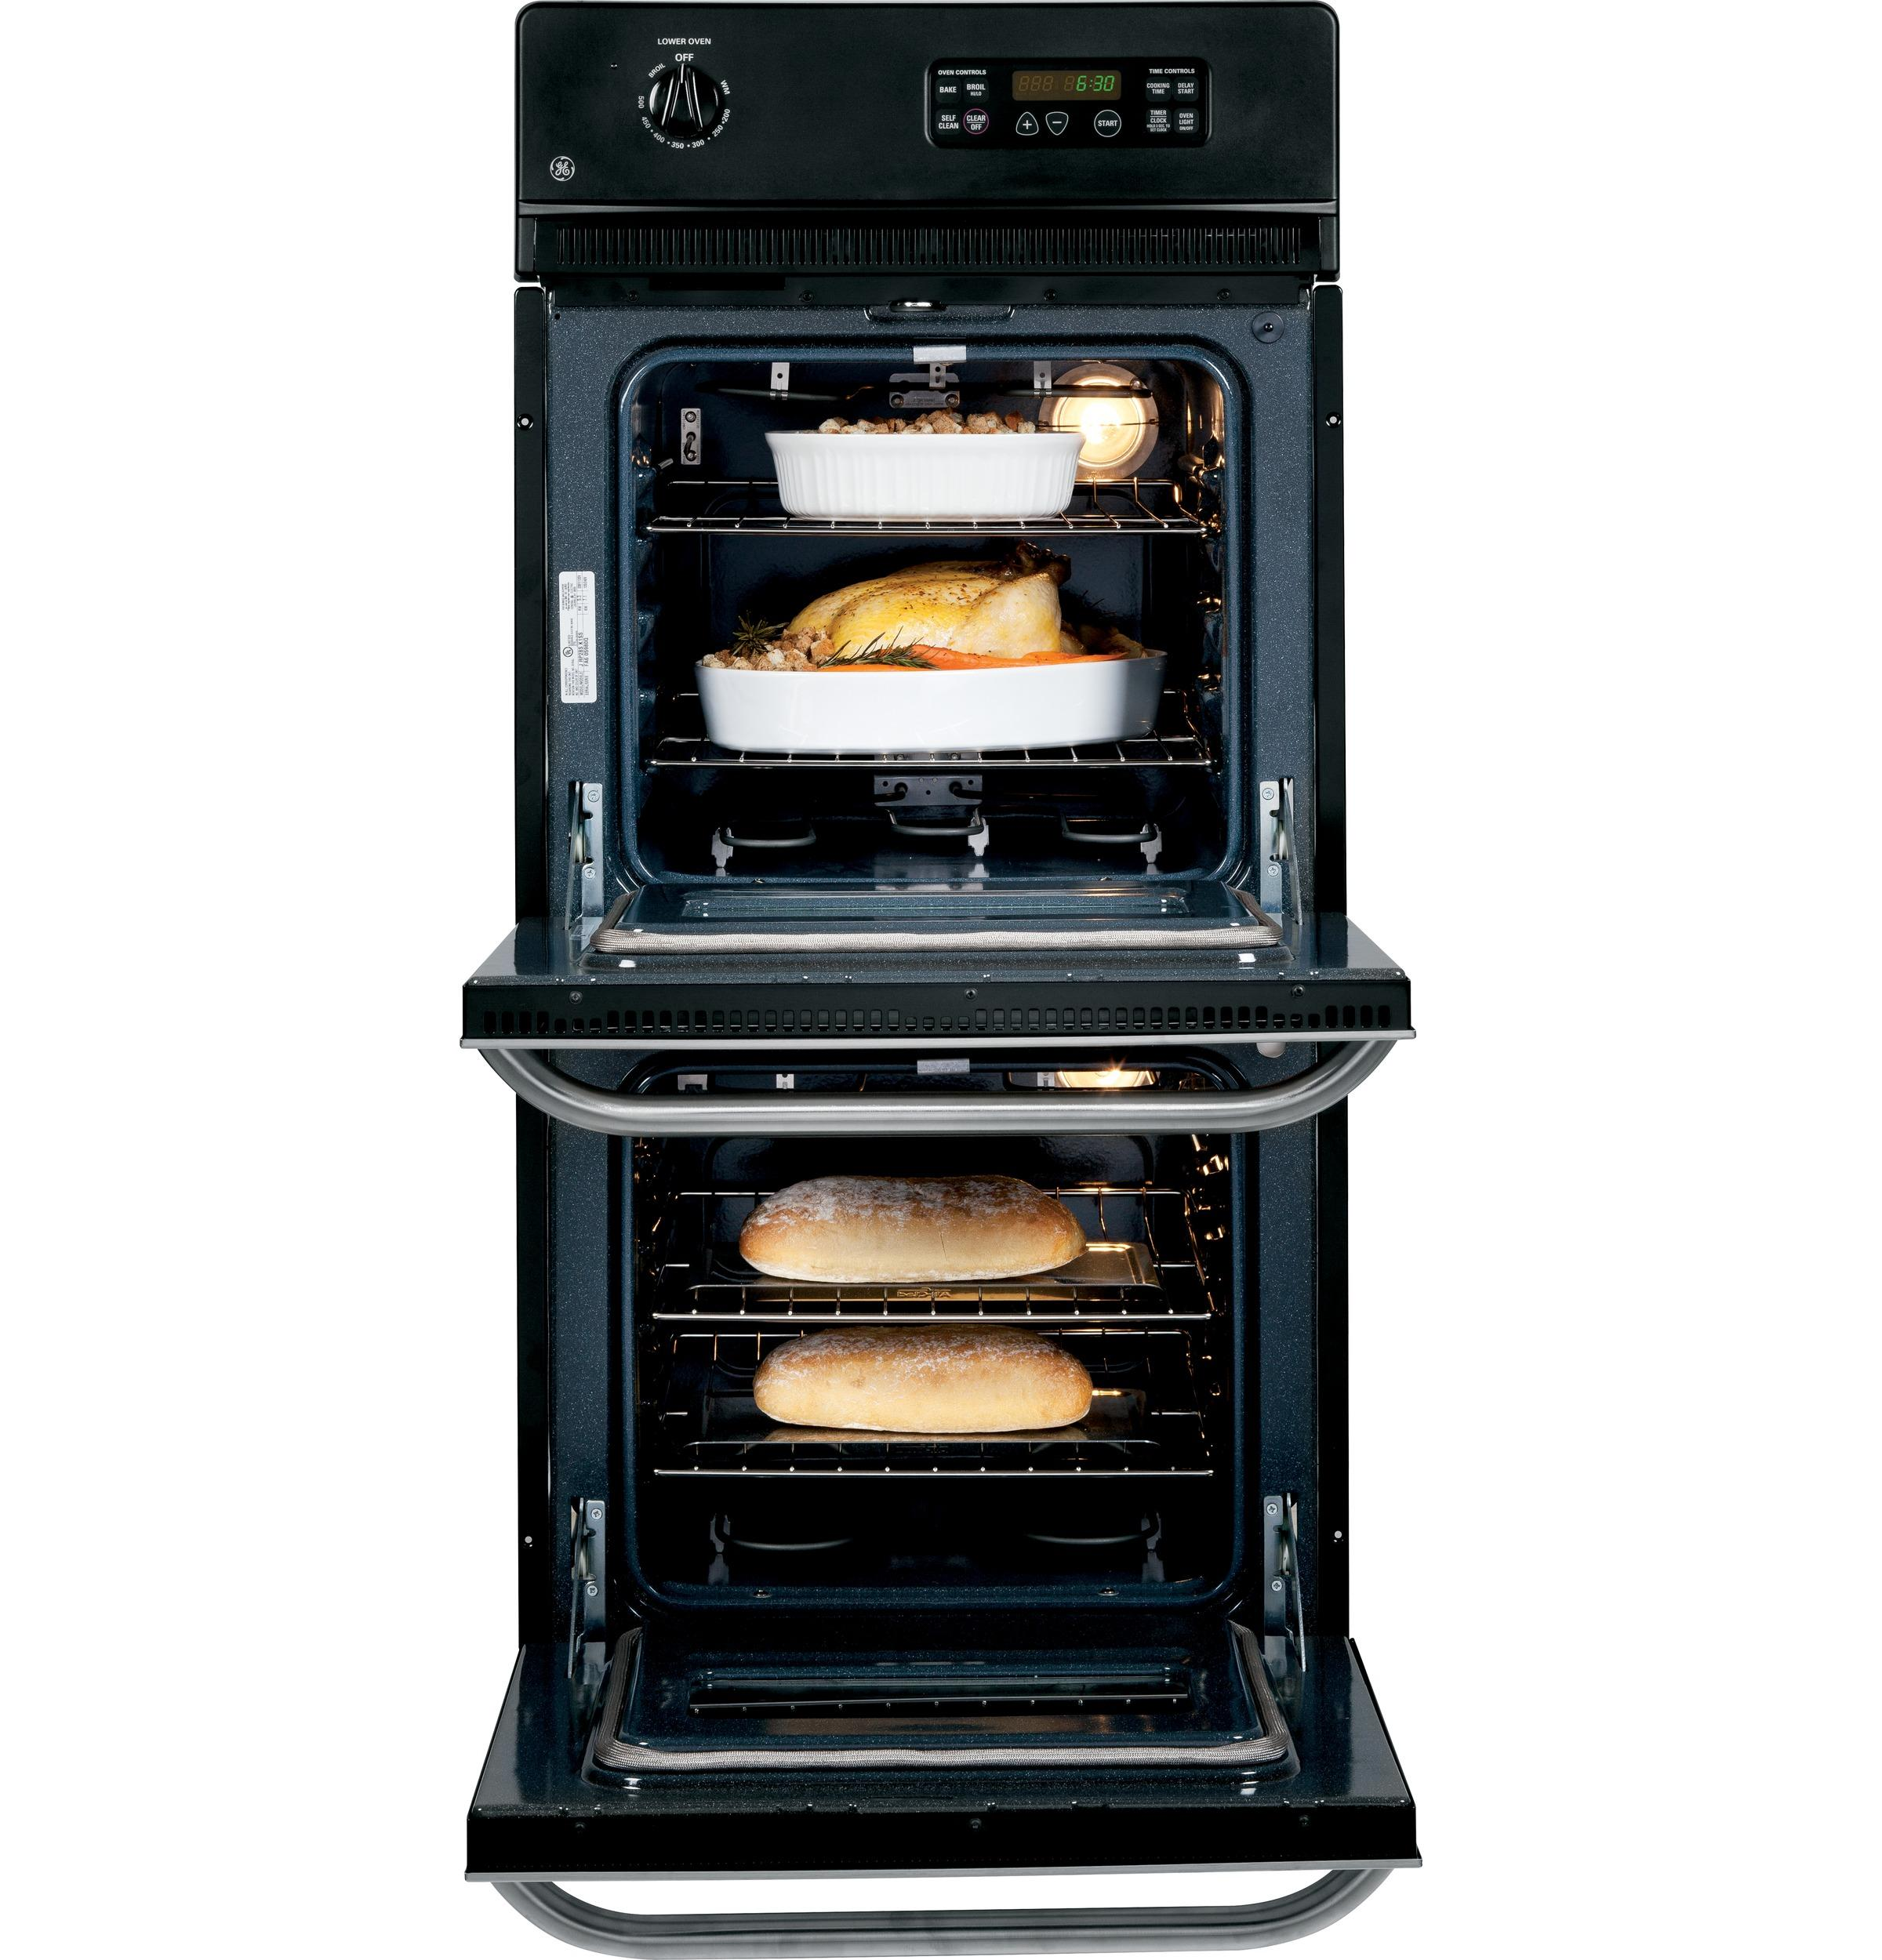 Jrp28 General Electric Jrp28 Double Wall Ovens